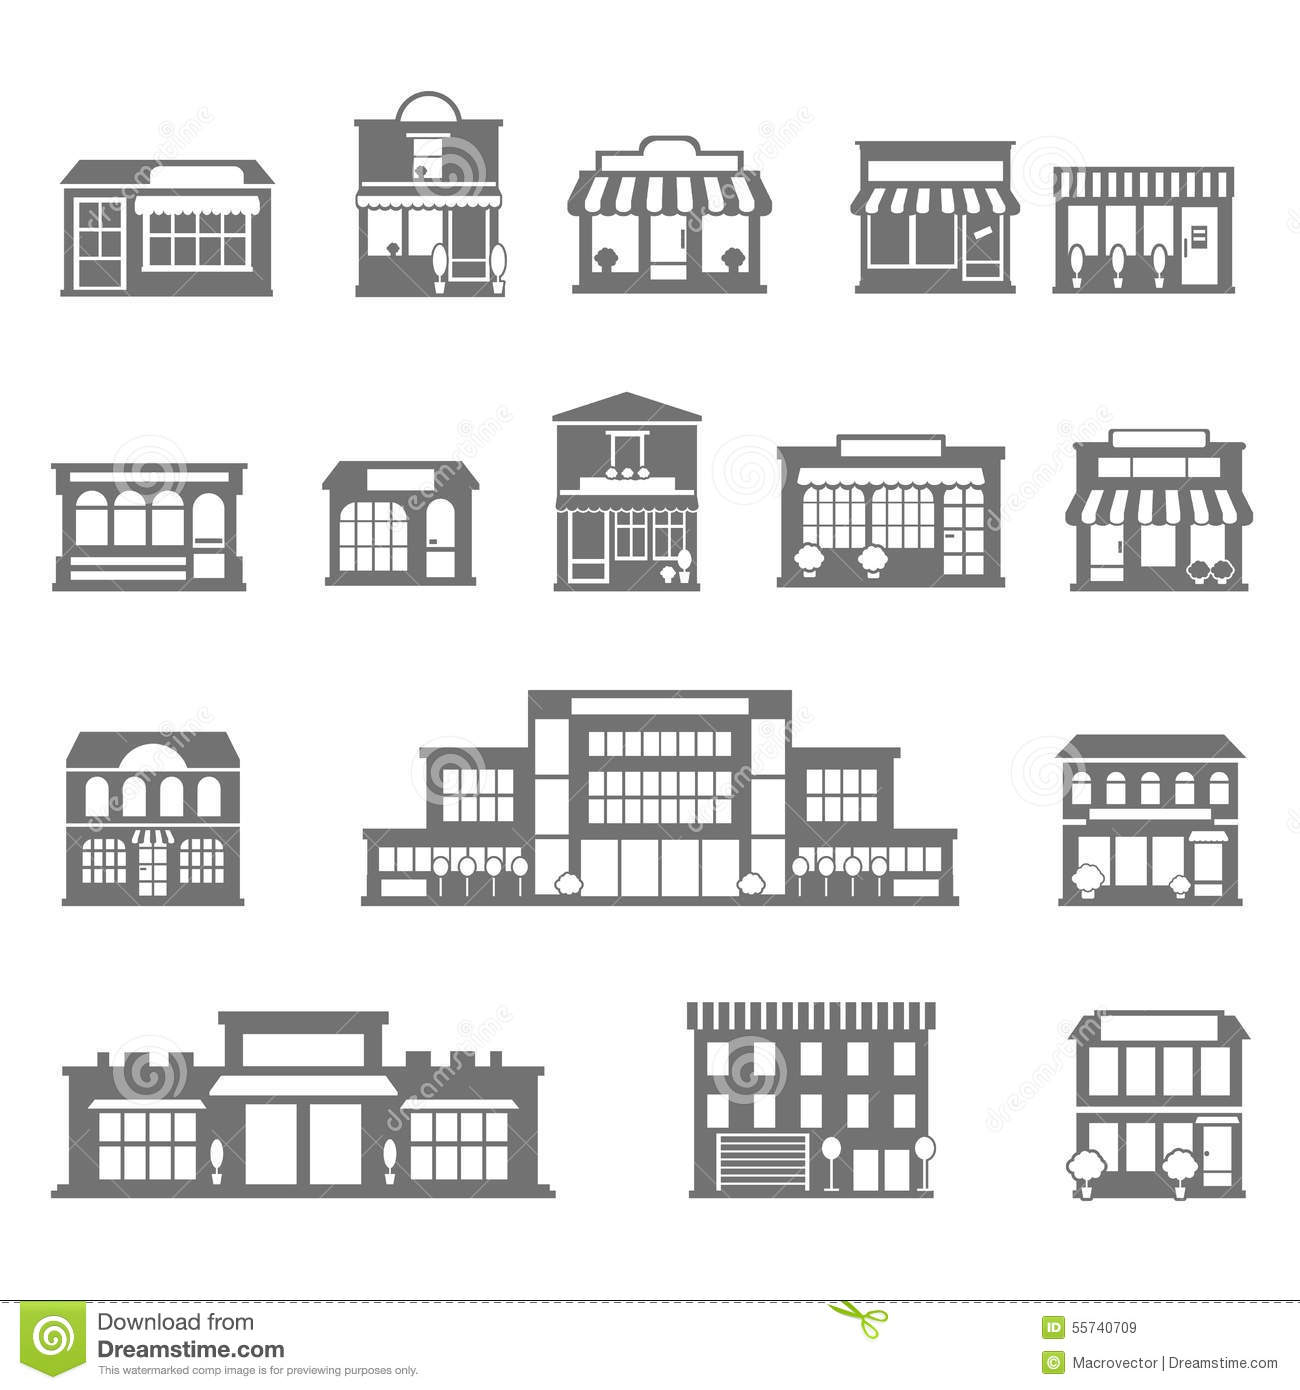 Small Shopping Mall Designs | Wiring Diagram Database